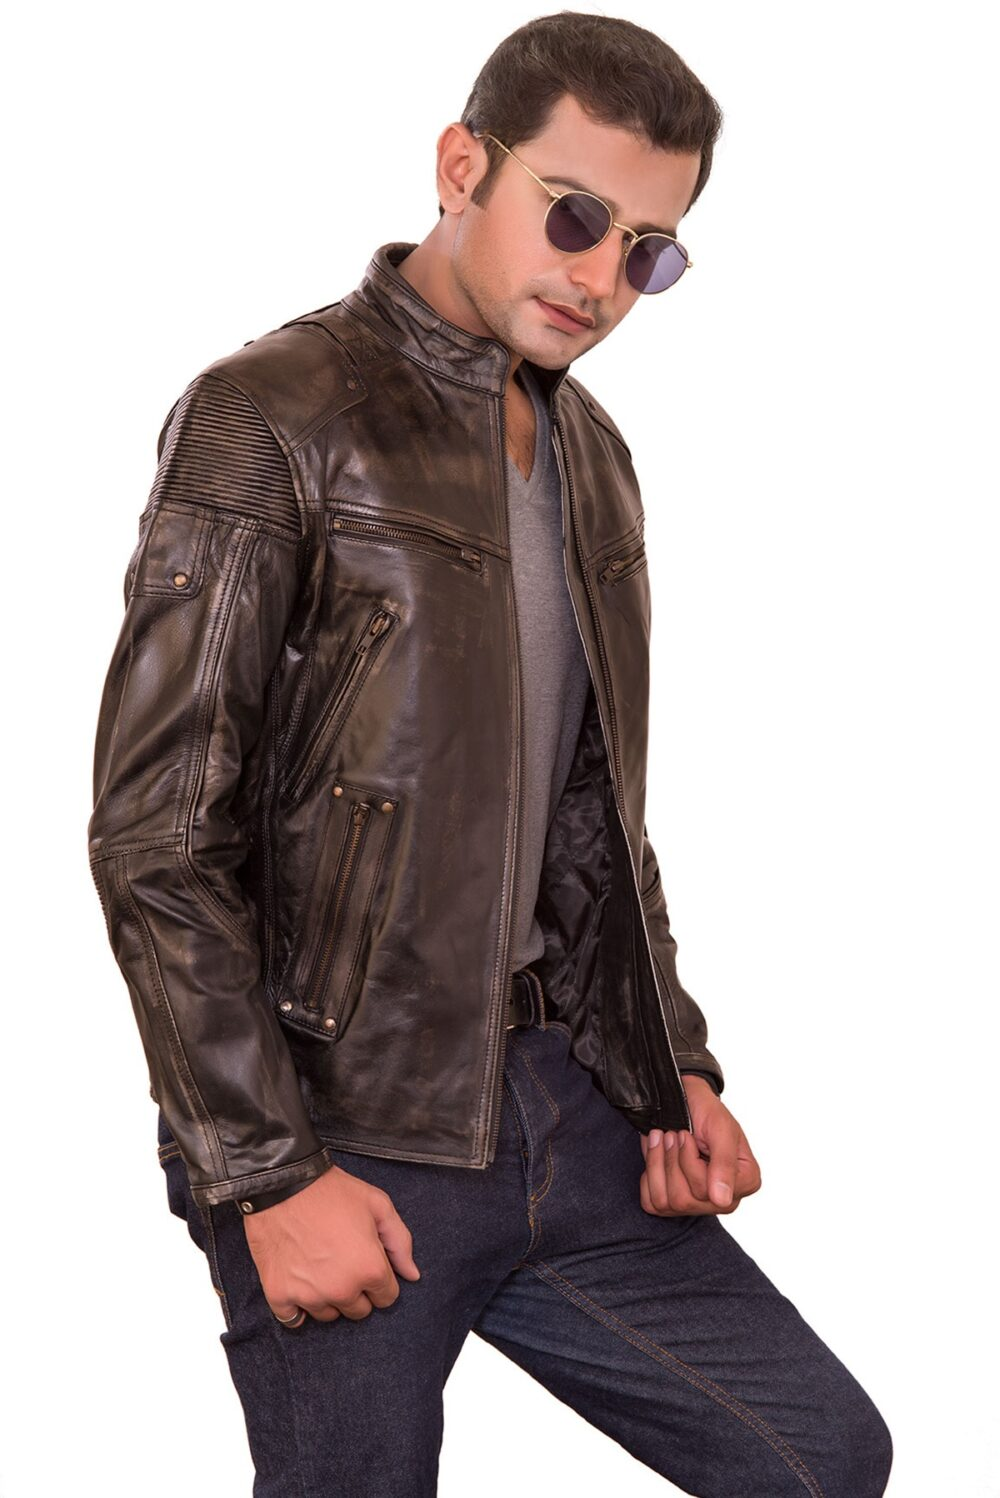 Tom Classic Retro Brown Mens Biker Jacket-Free Ship USA & Canada